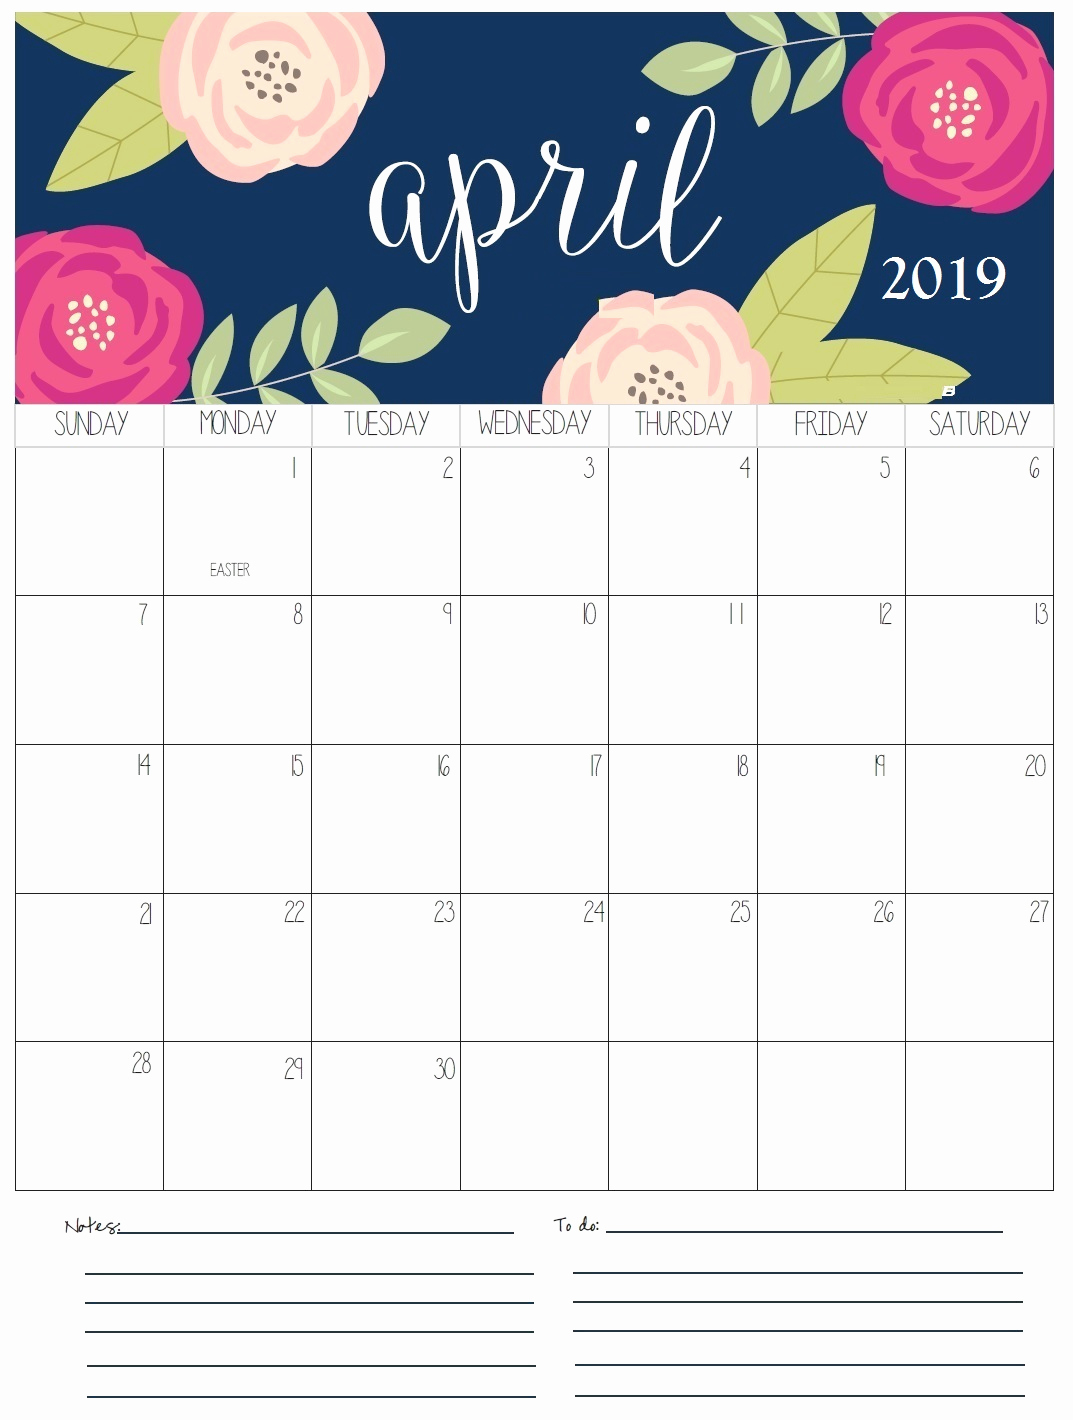 april 2019 calendar with holidays monthly printable